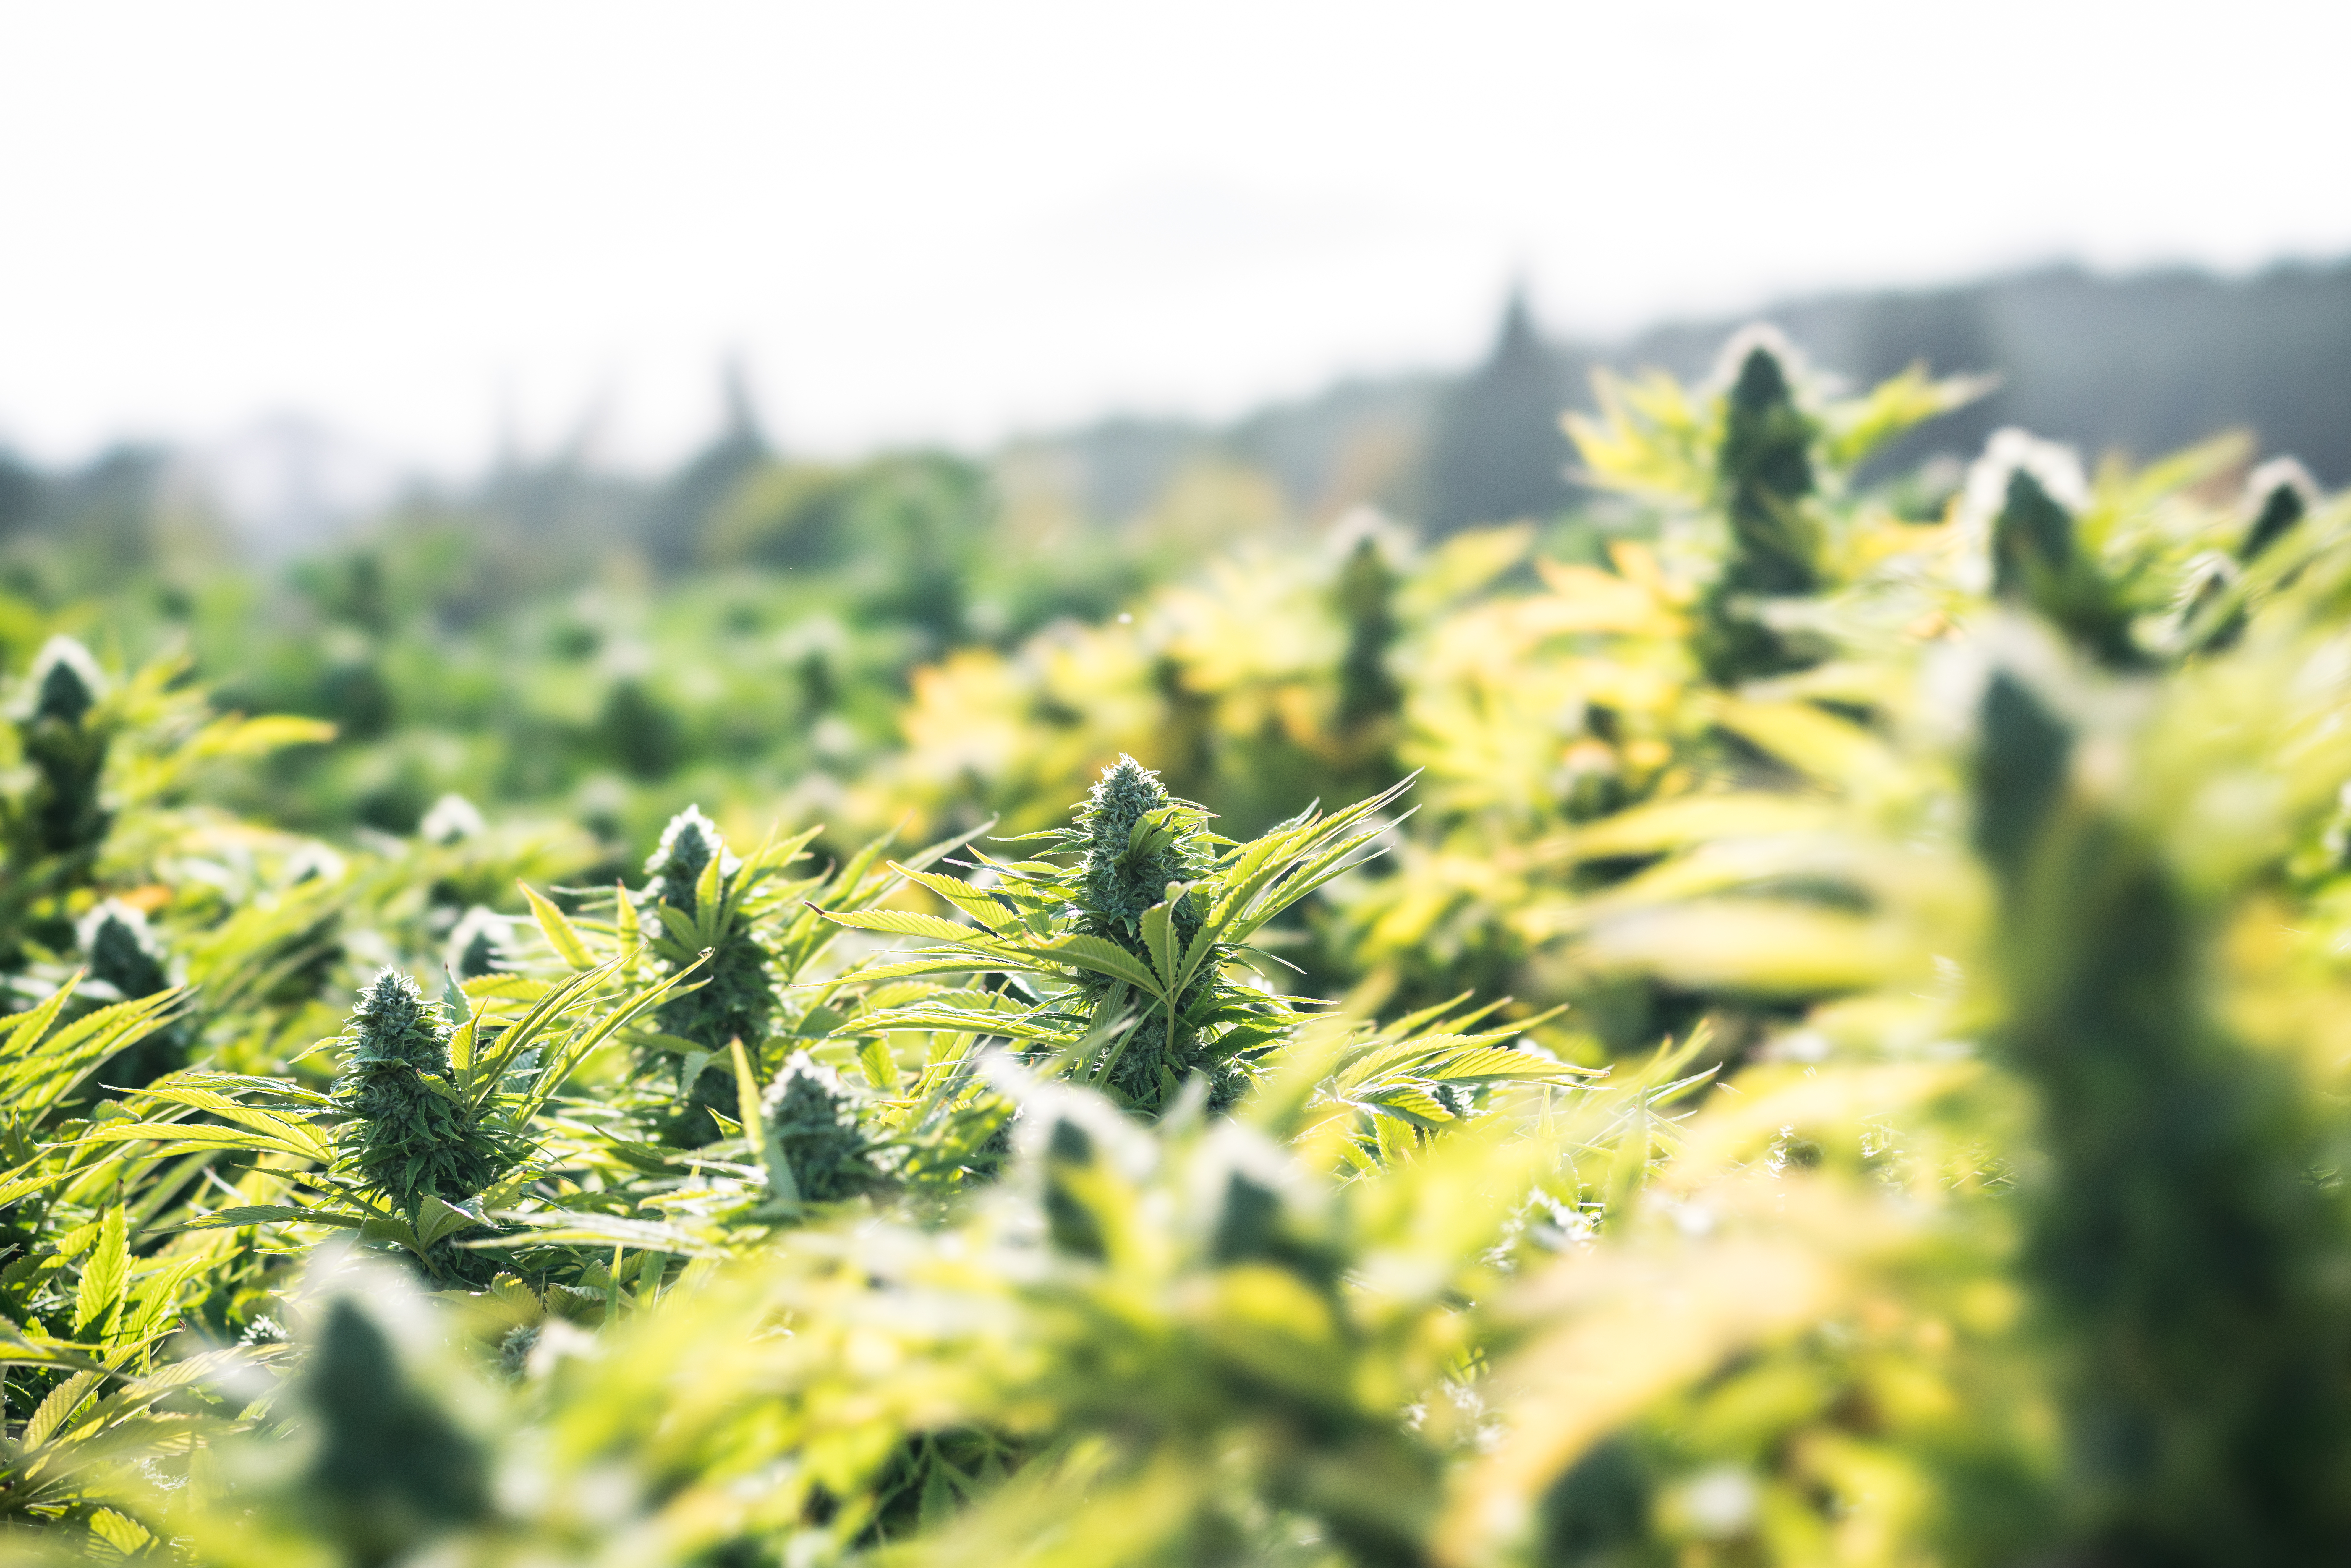 Cascade CBD hemp plants growing in field